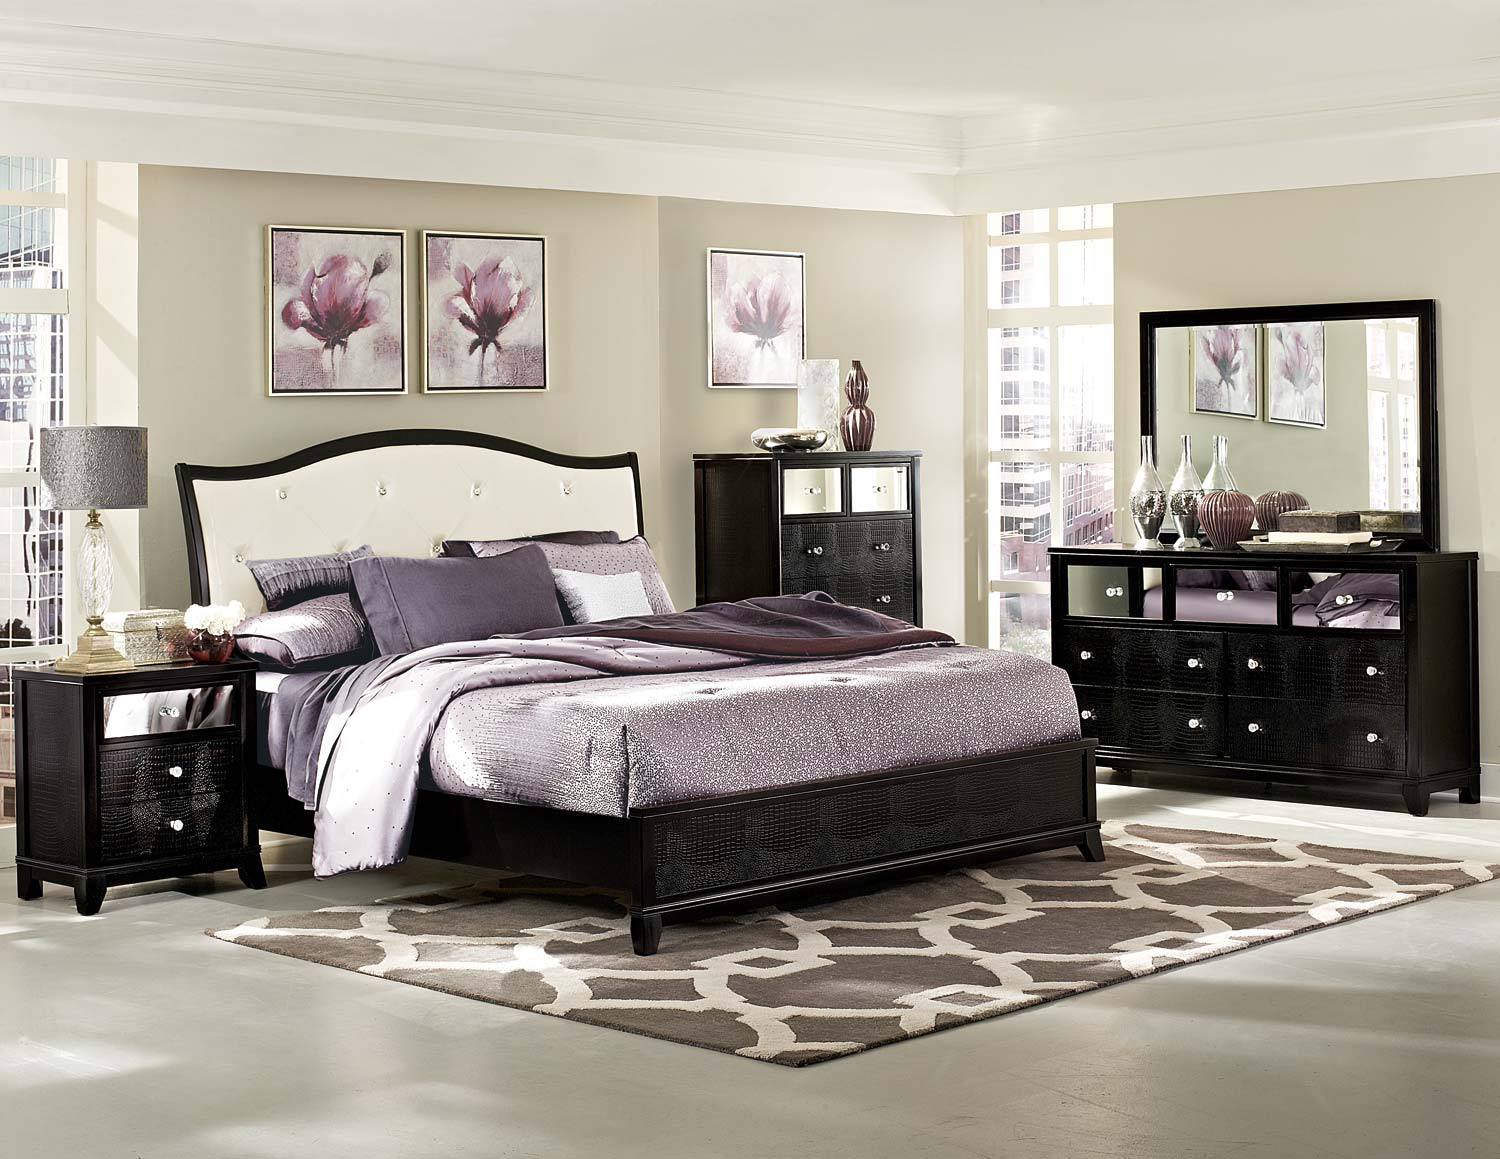 Homelegance Jacqueline Upholstered Bedroom Collection Faux Alligator Black